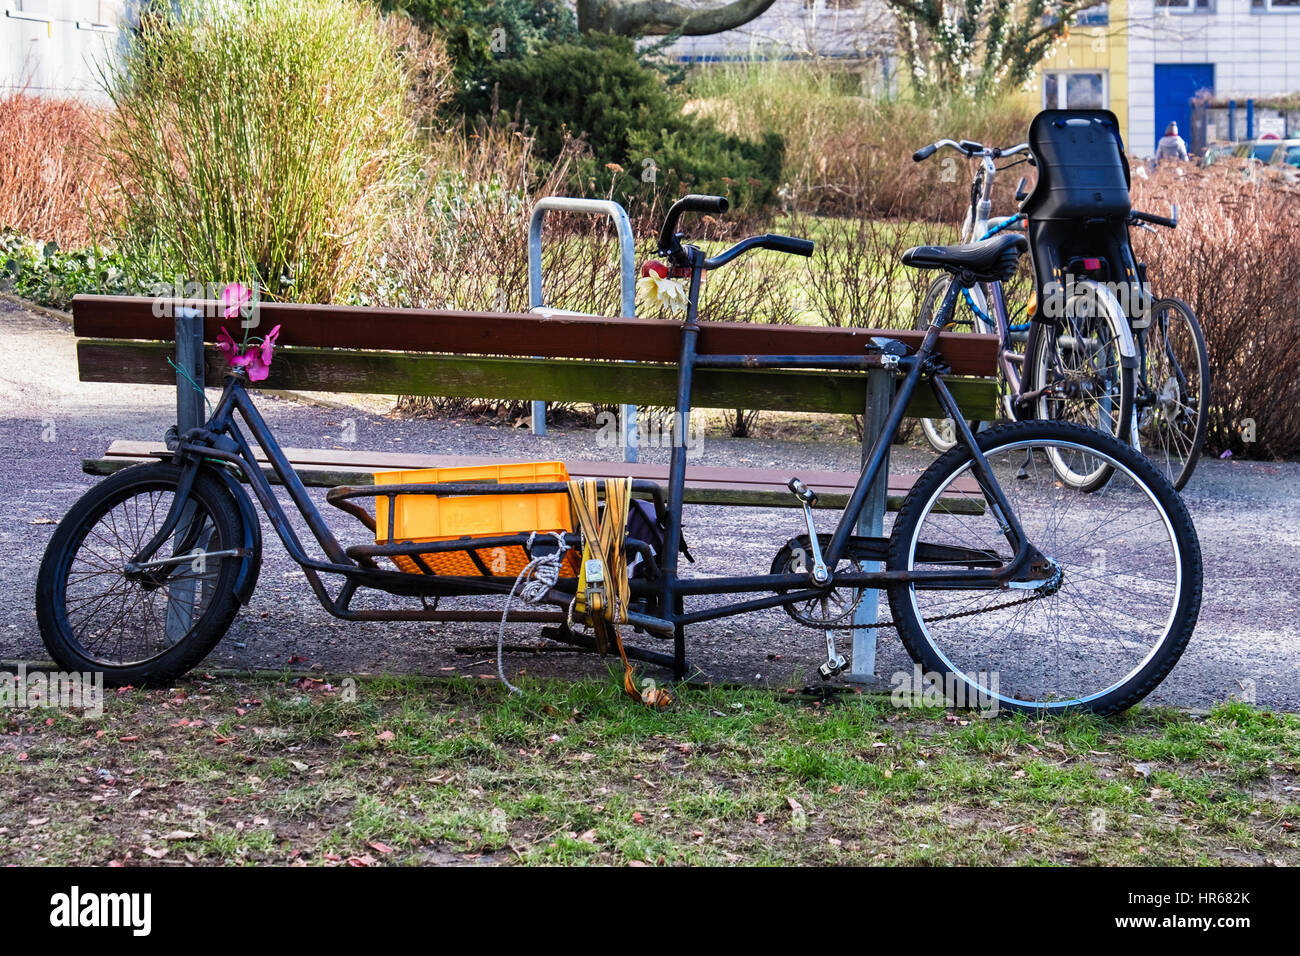 Elongated modified bicycle  with basket for carrying goods. Unusual bike modification.Delivery bicycle. - Stock Image